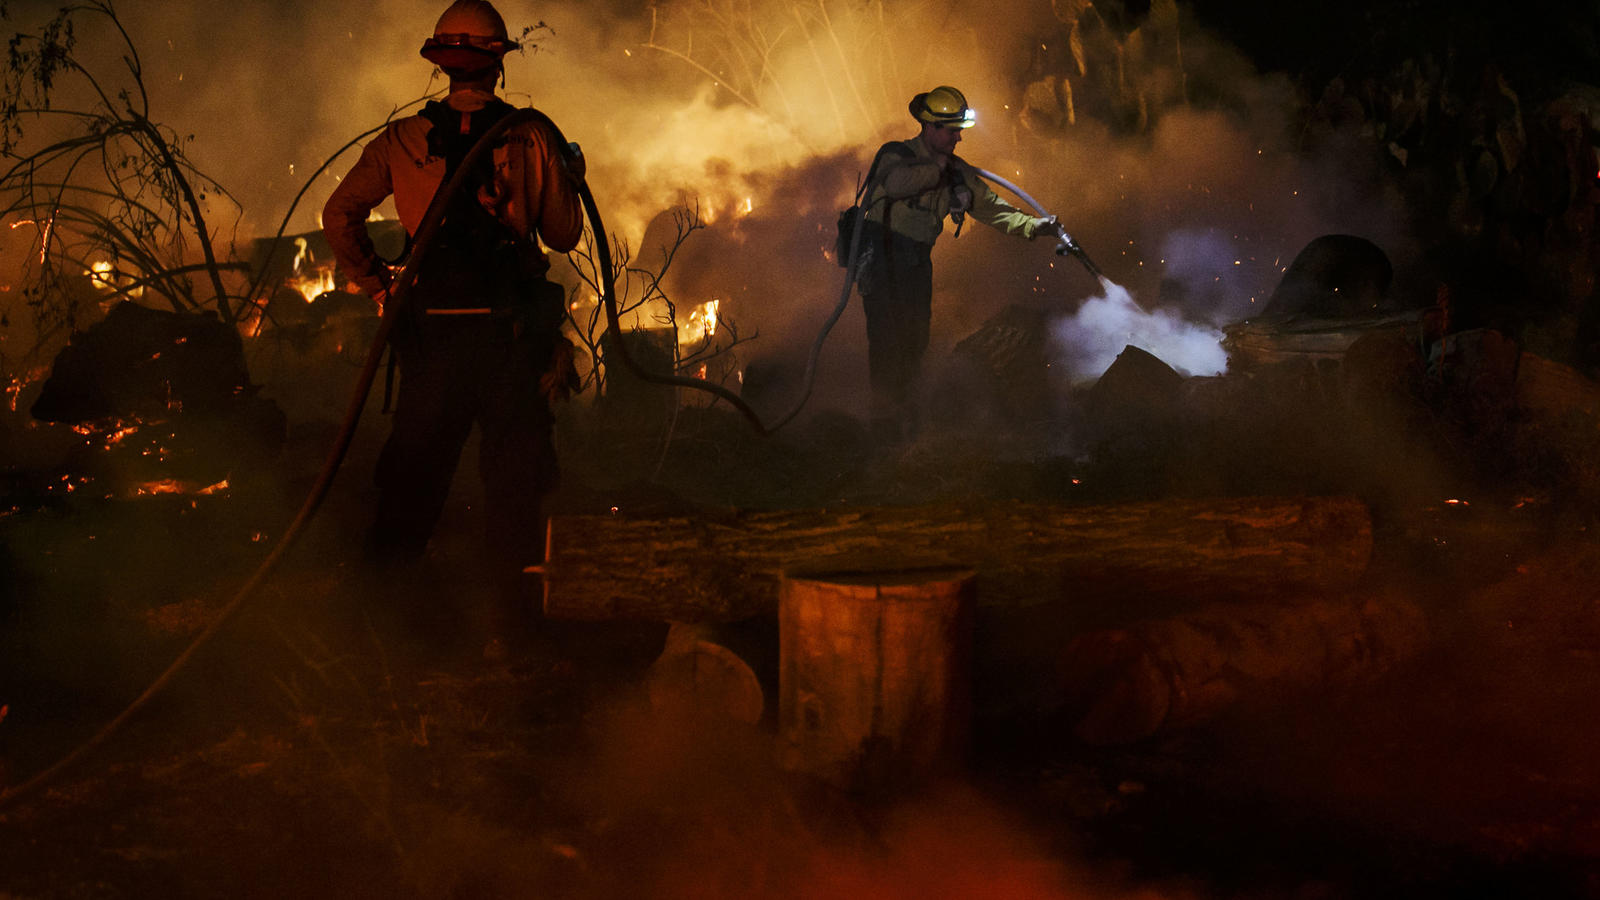 Fire crews hose down hot spots on North Rice Road in Ojai. (Marcus Yam / Los Angeles Times)